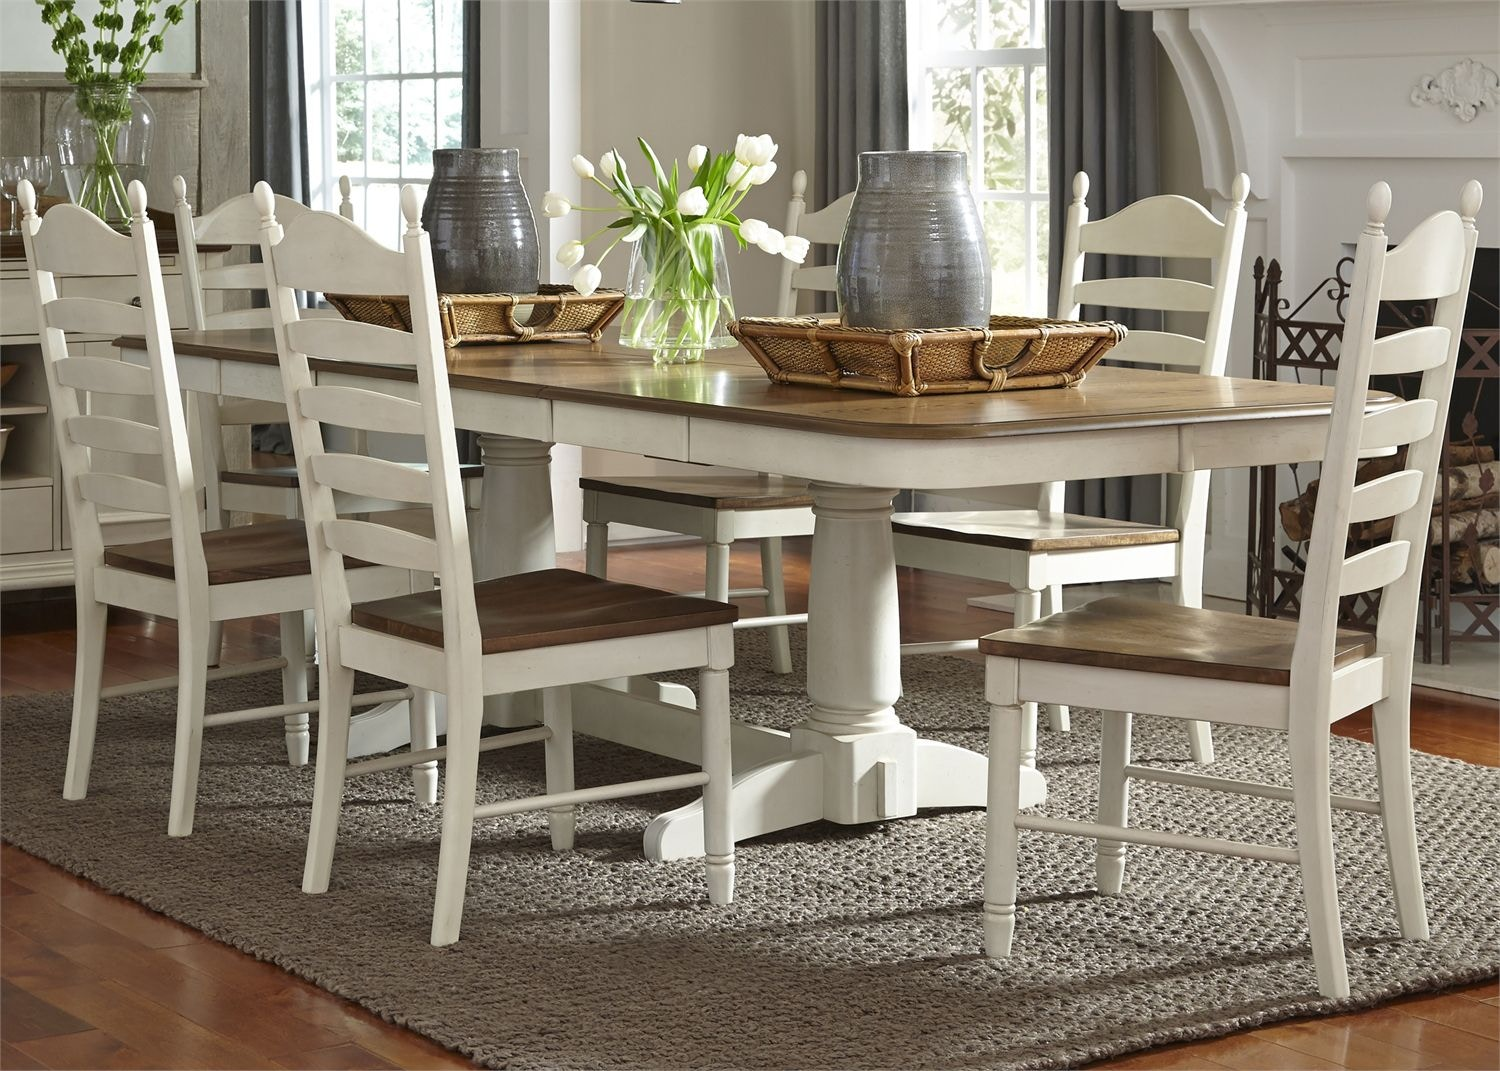 liberty furniture dining table. Liberty Furniture 7 Piece Double Pedestal Table Set 278-CD-72PS Dining